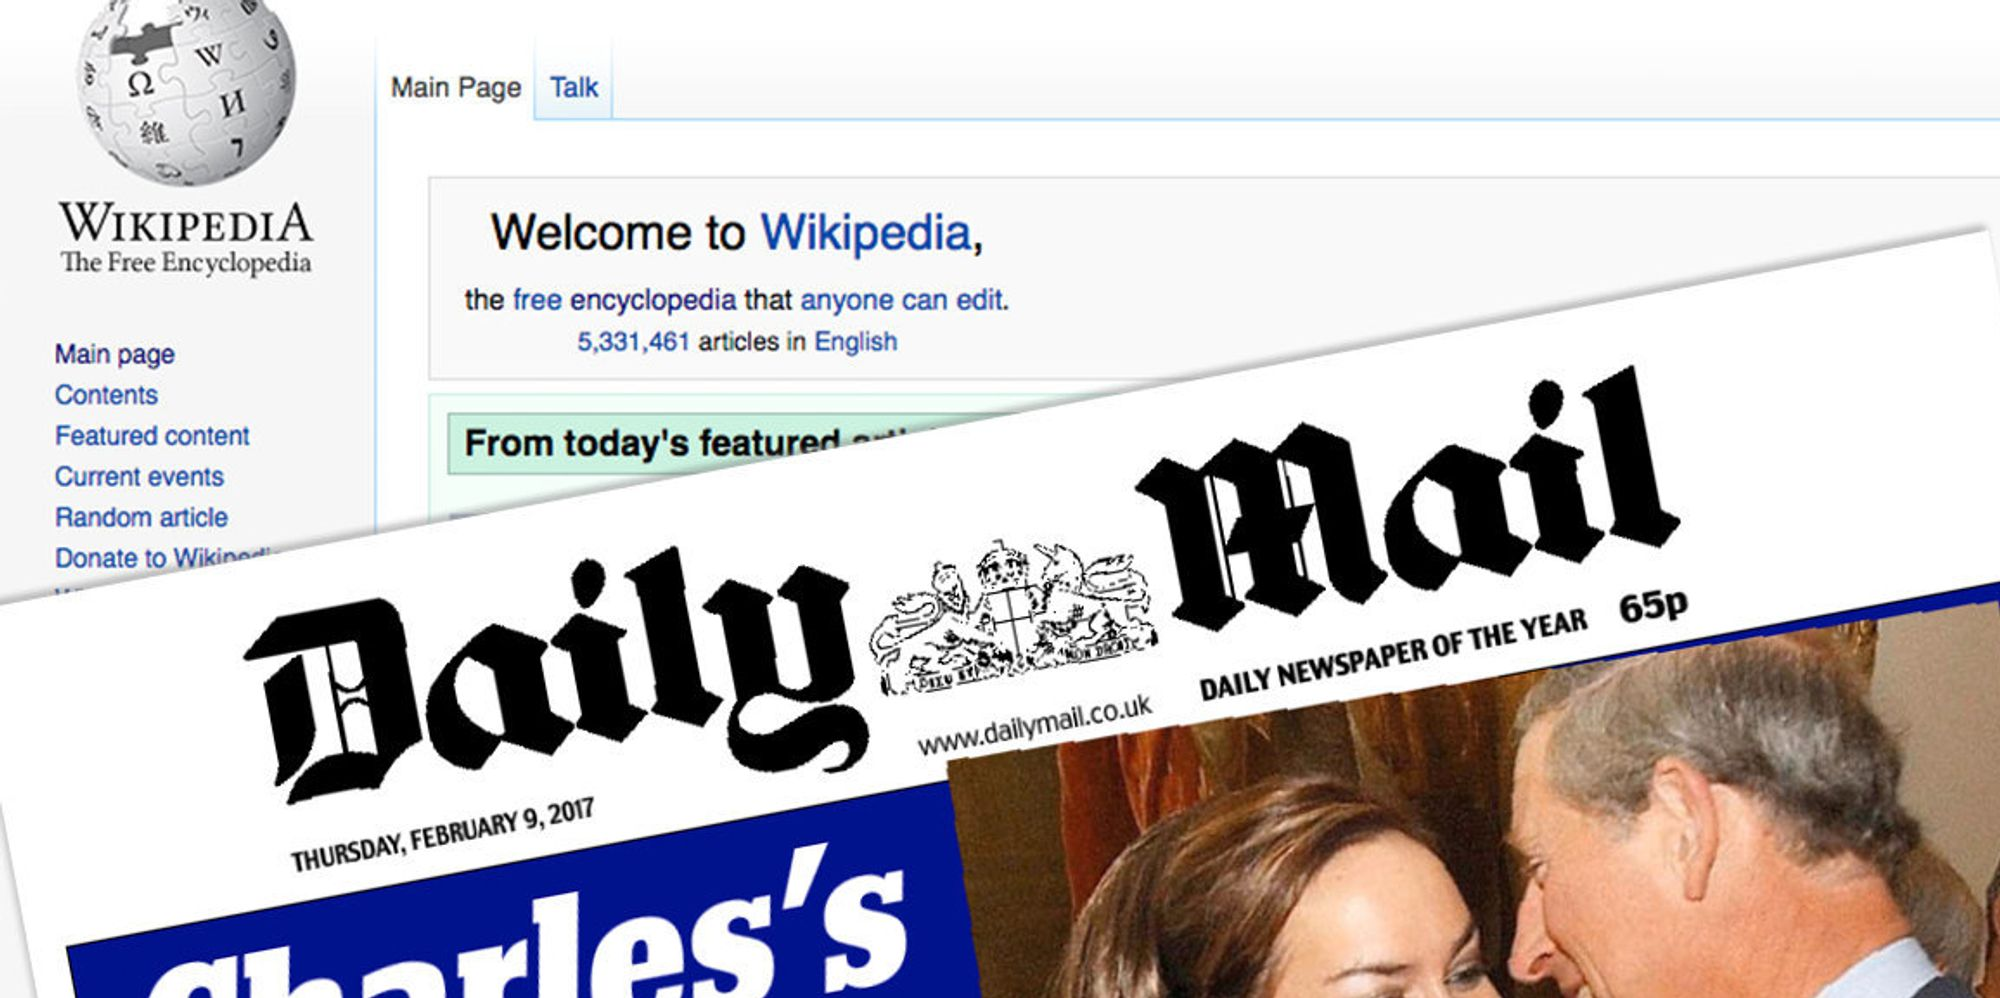 Gally Mail: Daily Mail Banned As 'Reliable Source' On Wikipedia In